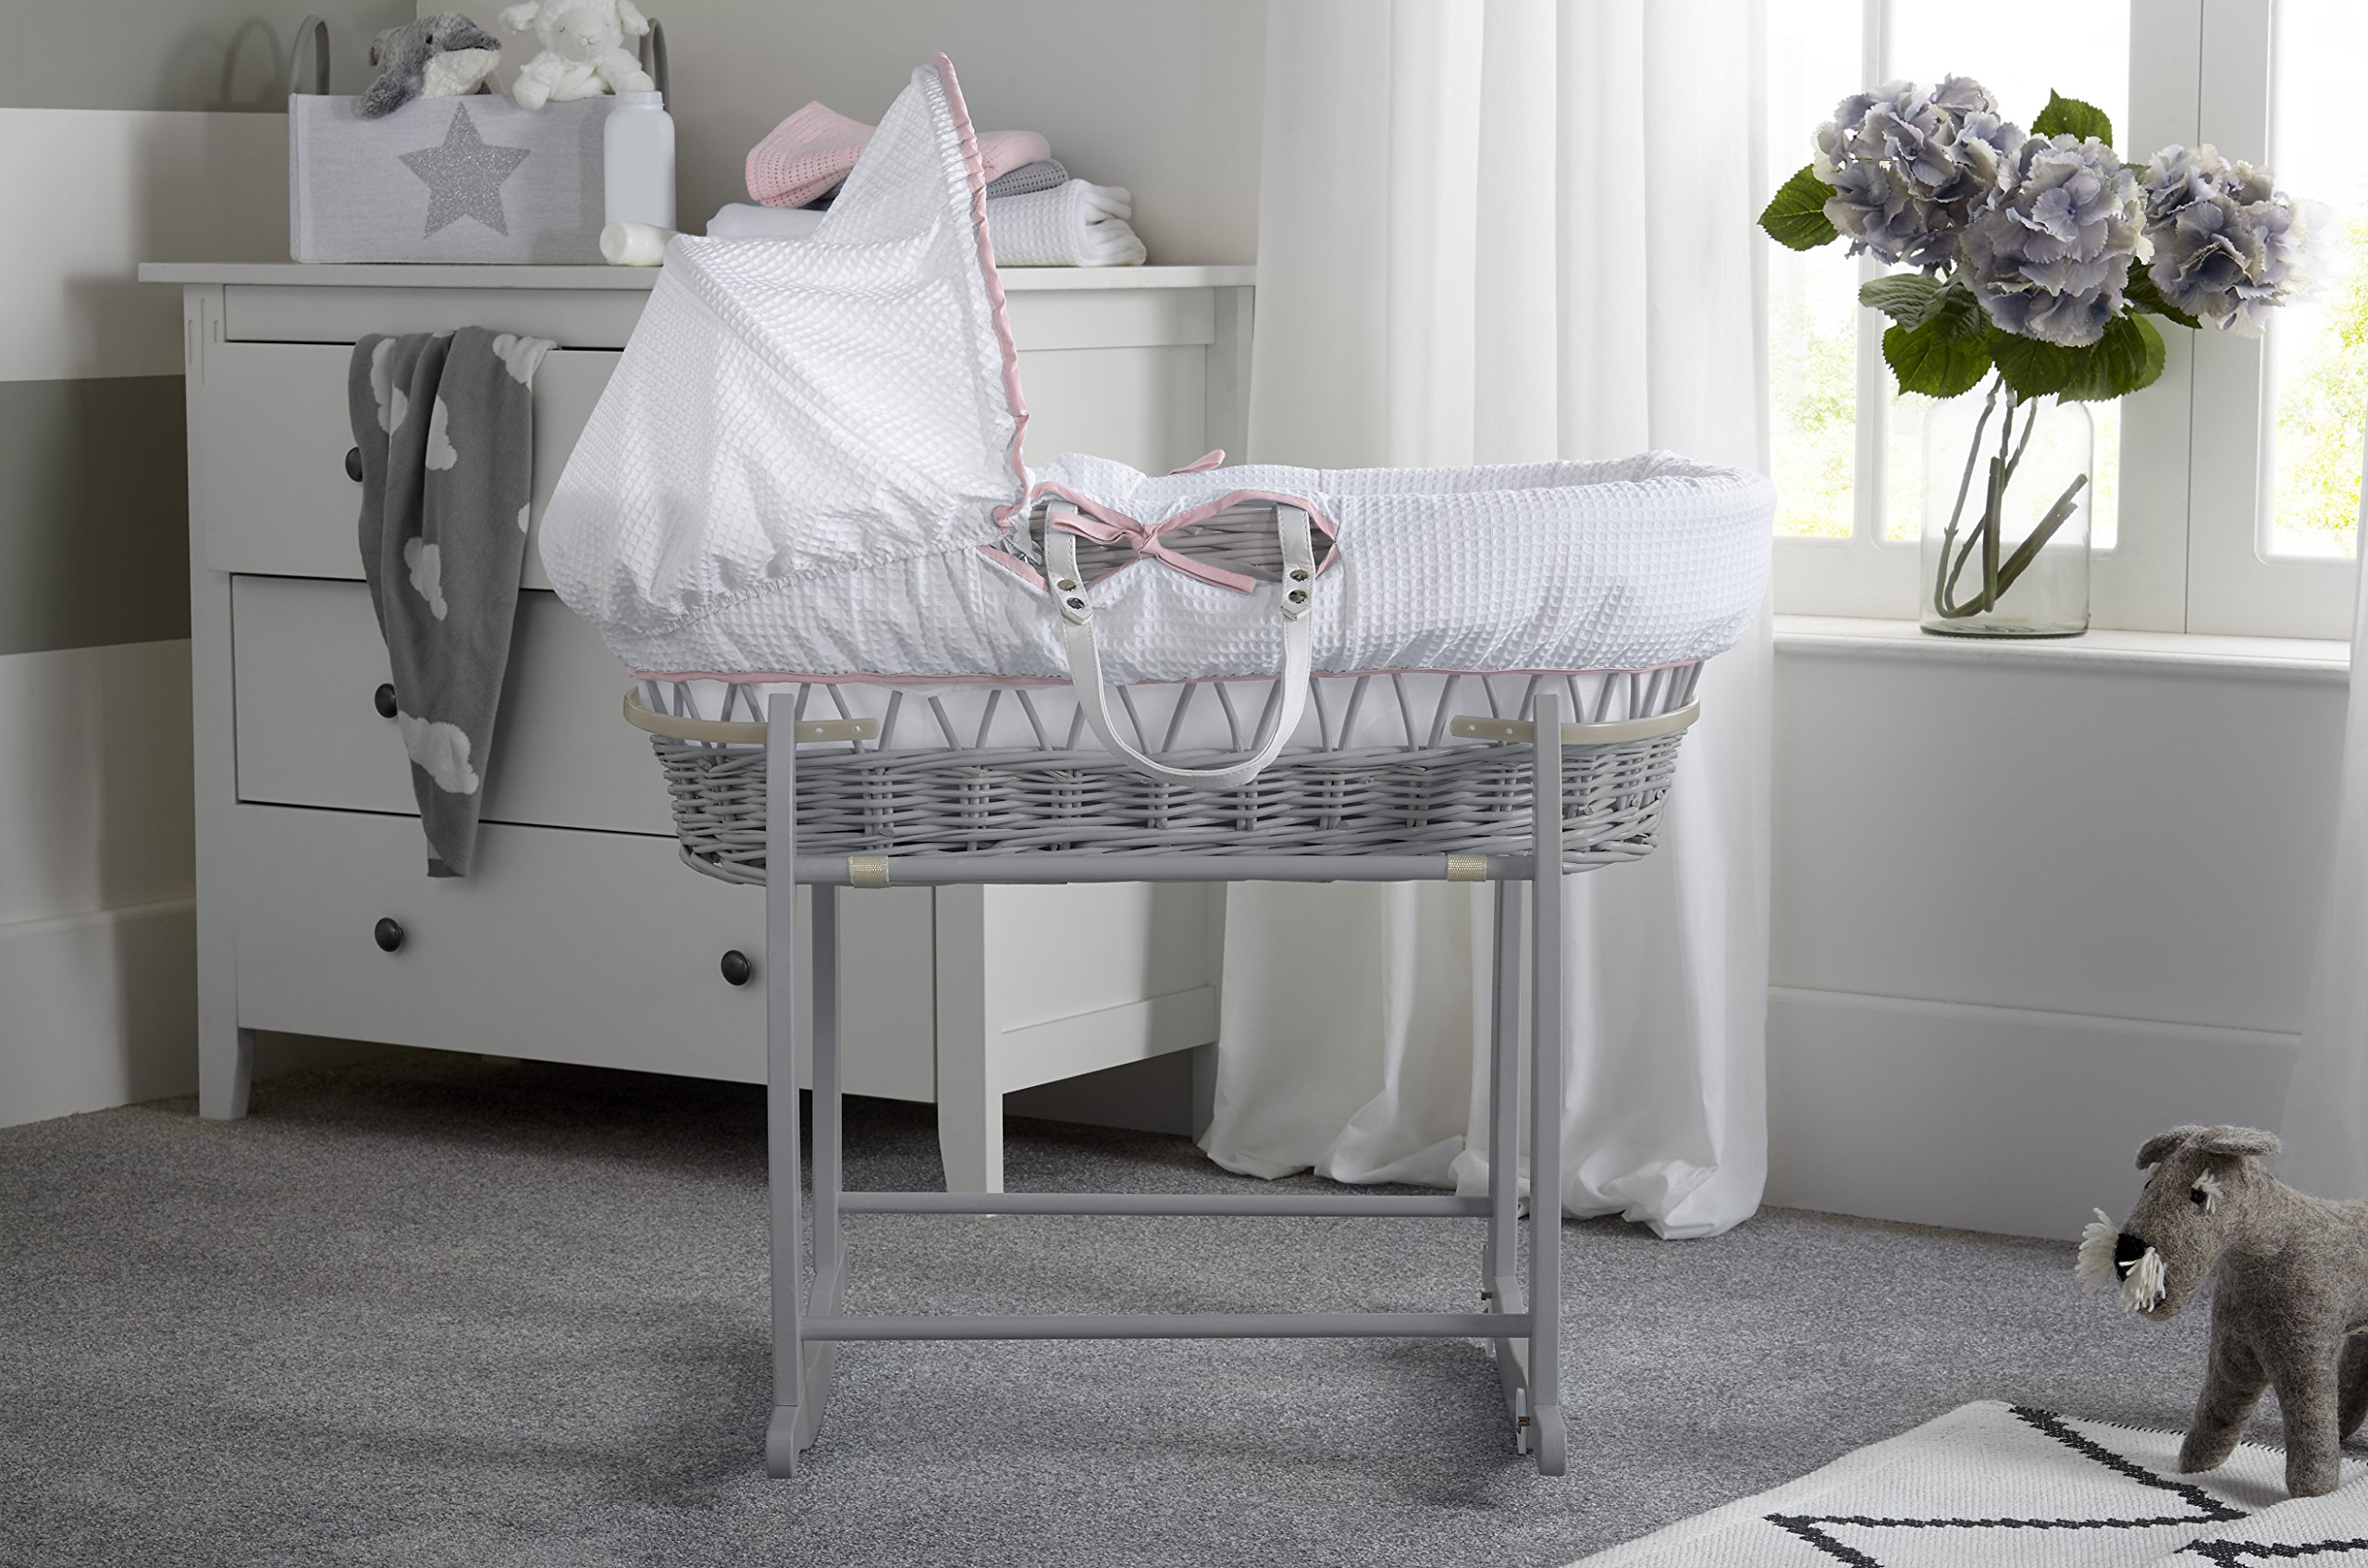 Clair de Lune Wicker Moses Basket, Pink/Grey, Over The Moon Clair de Lune Made from 100% super soft cotton fabric, featuring star prints and a sleepy moon with crocheted cloud appliqué for the perfect finishing touch. Comes complete with a removable, adjustable hood, padded liner, coverlet, 2 carry handles, and a mattress. *stand sold separately. Adjustable hood that's perfect for creating a cosy sleeping space for your precious little one. 2